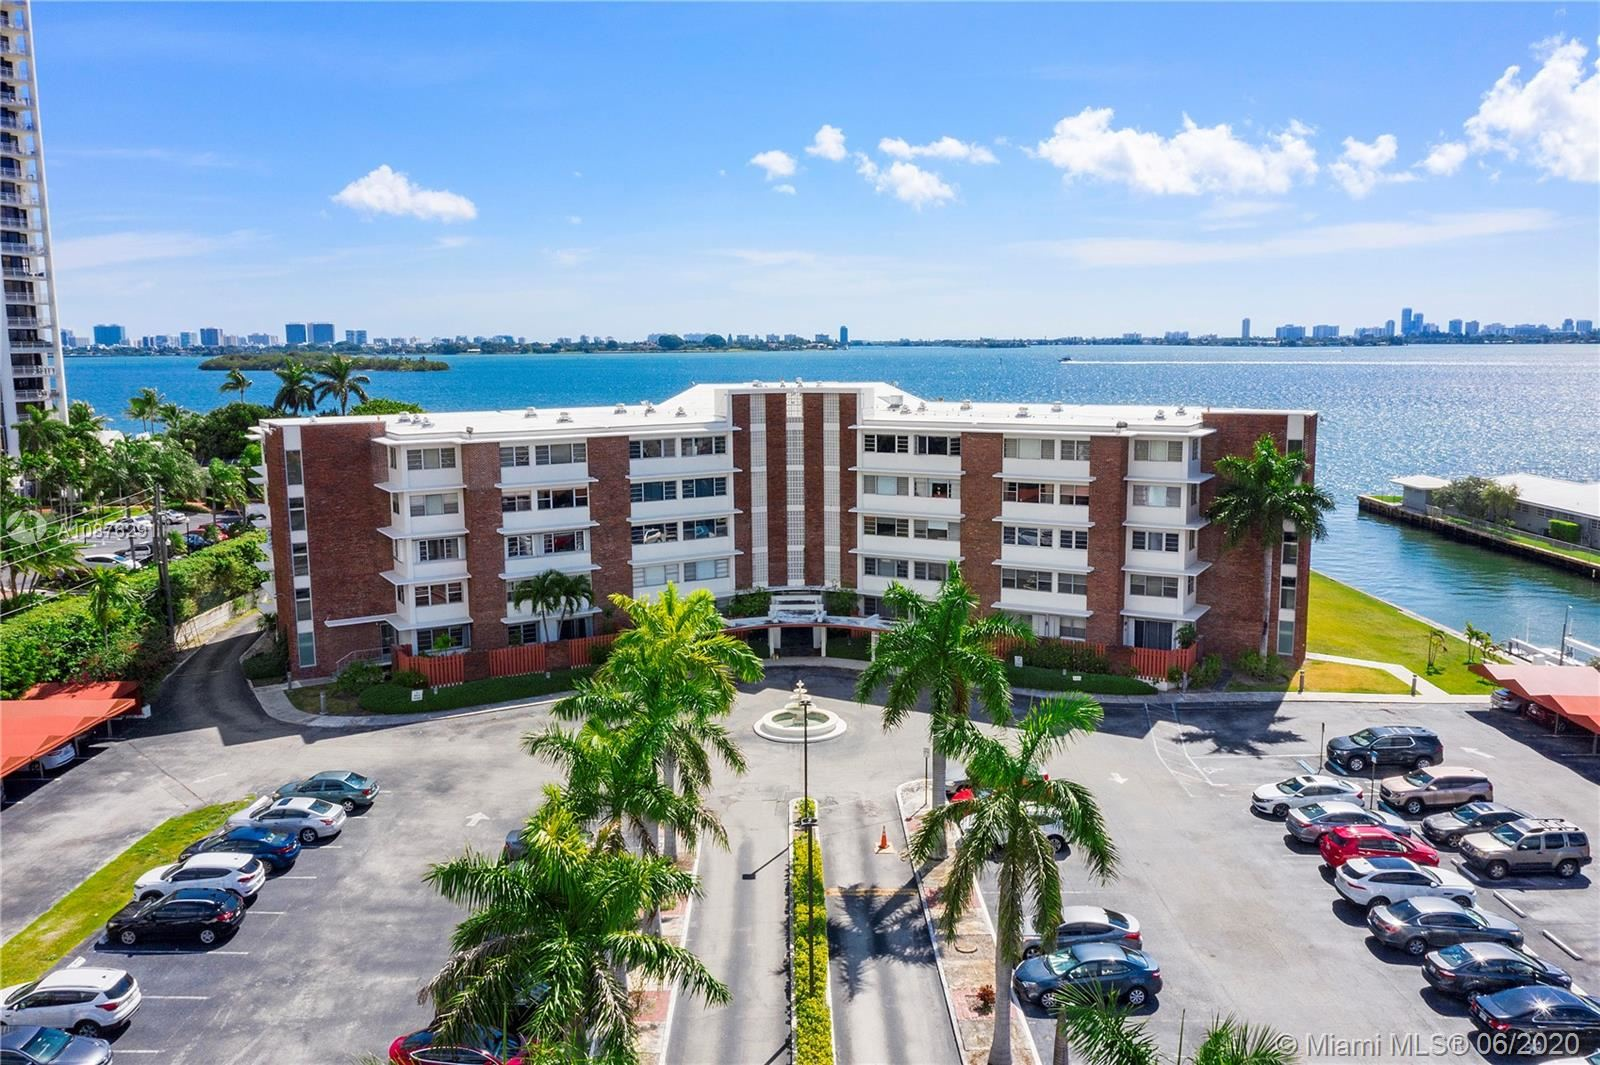 1700 NE 105th St #203, Miami Shores, FL 33138 - #: A10876291